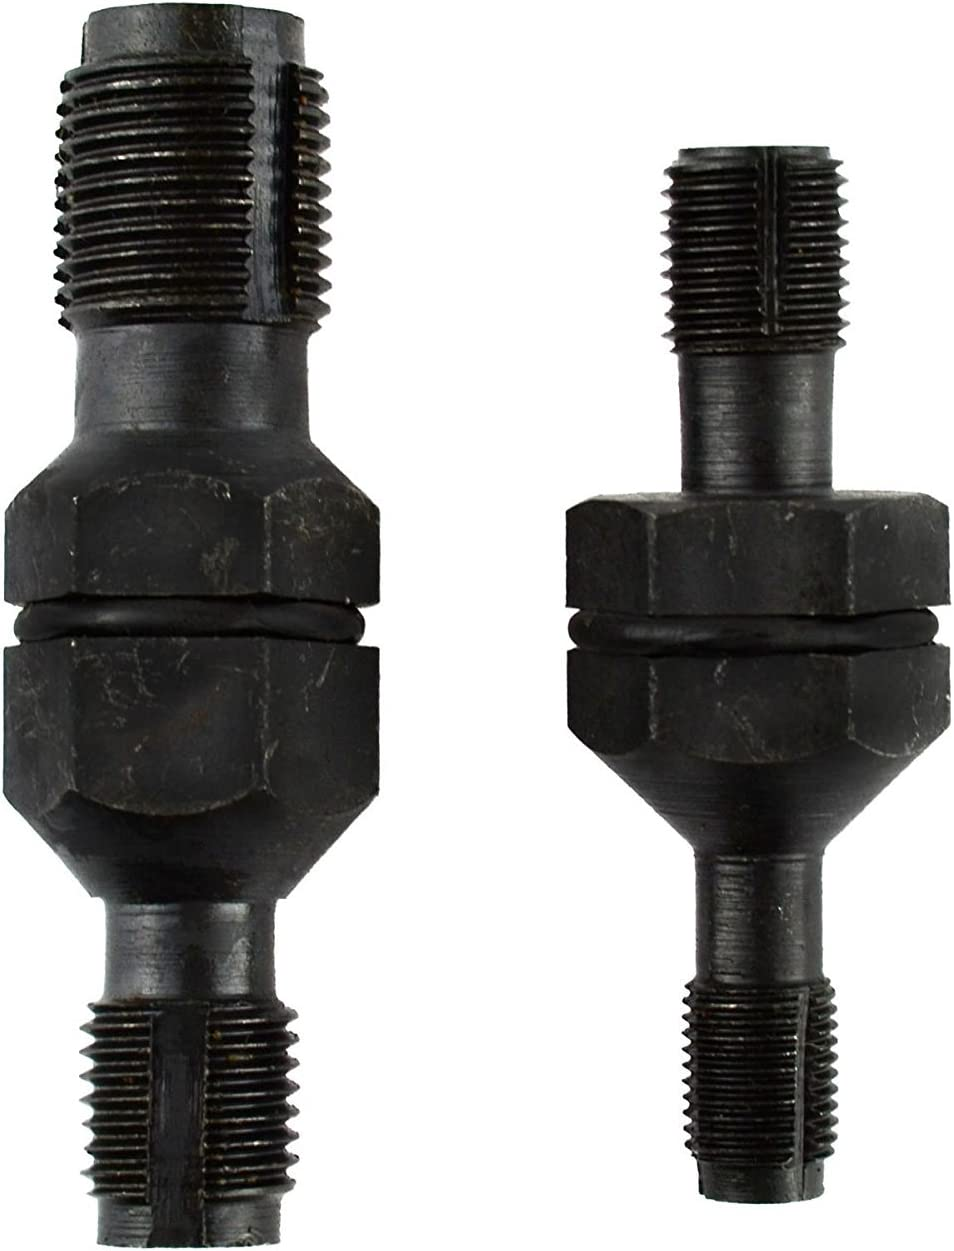 Spark Plug Hole Thread Chaser Restores 14mm and 18mm Threads Made in USA